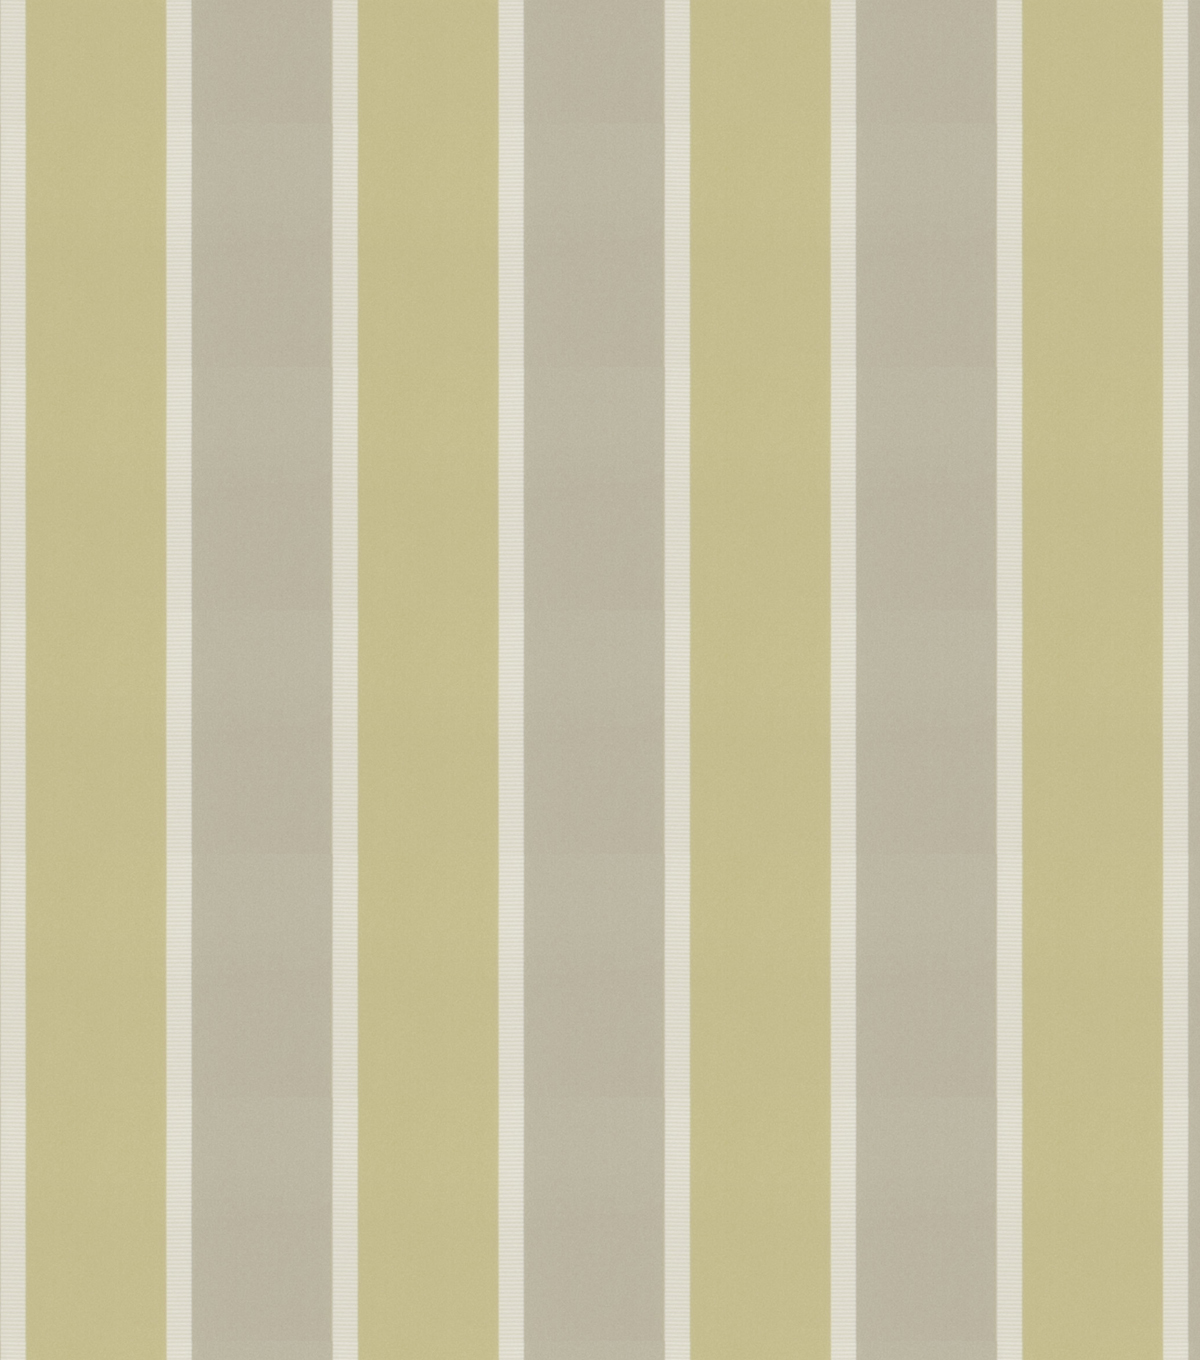 Home Decor 8x8 Fabric Swatch-Eaton Square Group Pistachio